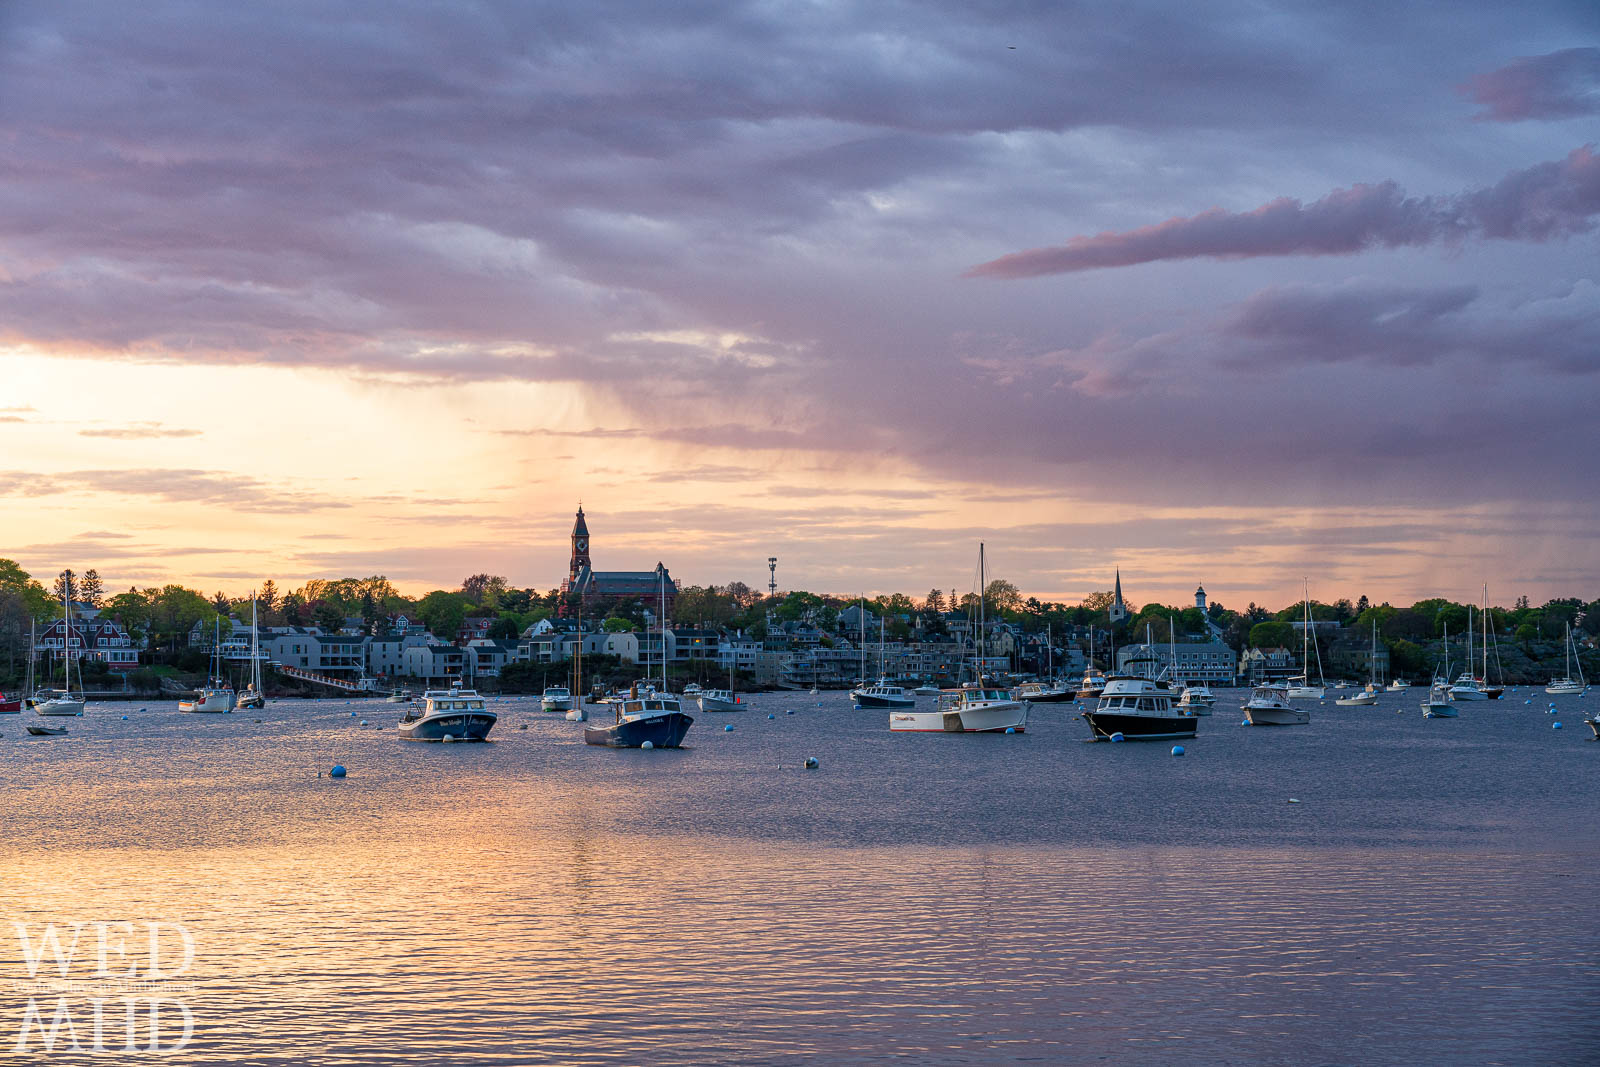 A spring sunset forms over Marblehead and a harbor filling with boats highlighted by green foliage and passing rain clouds